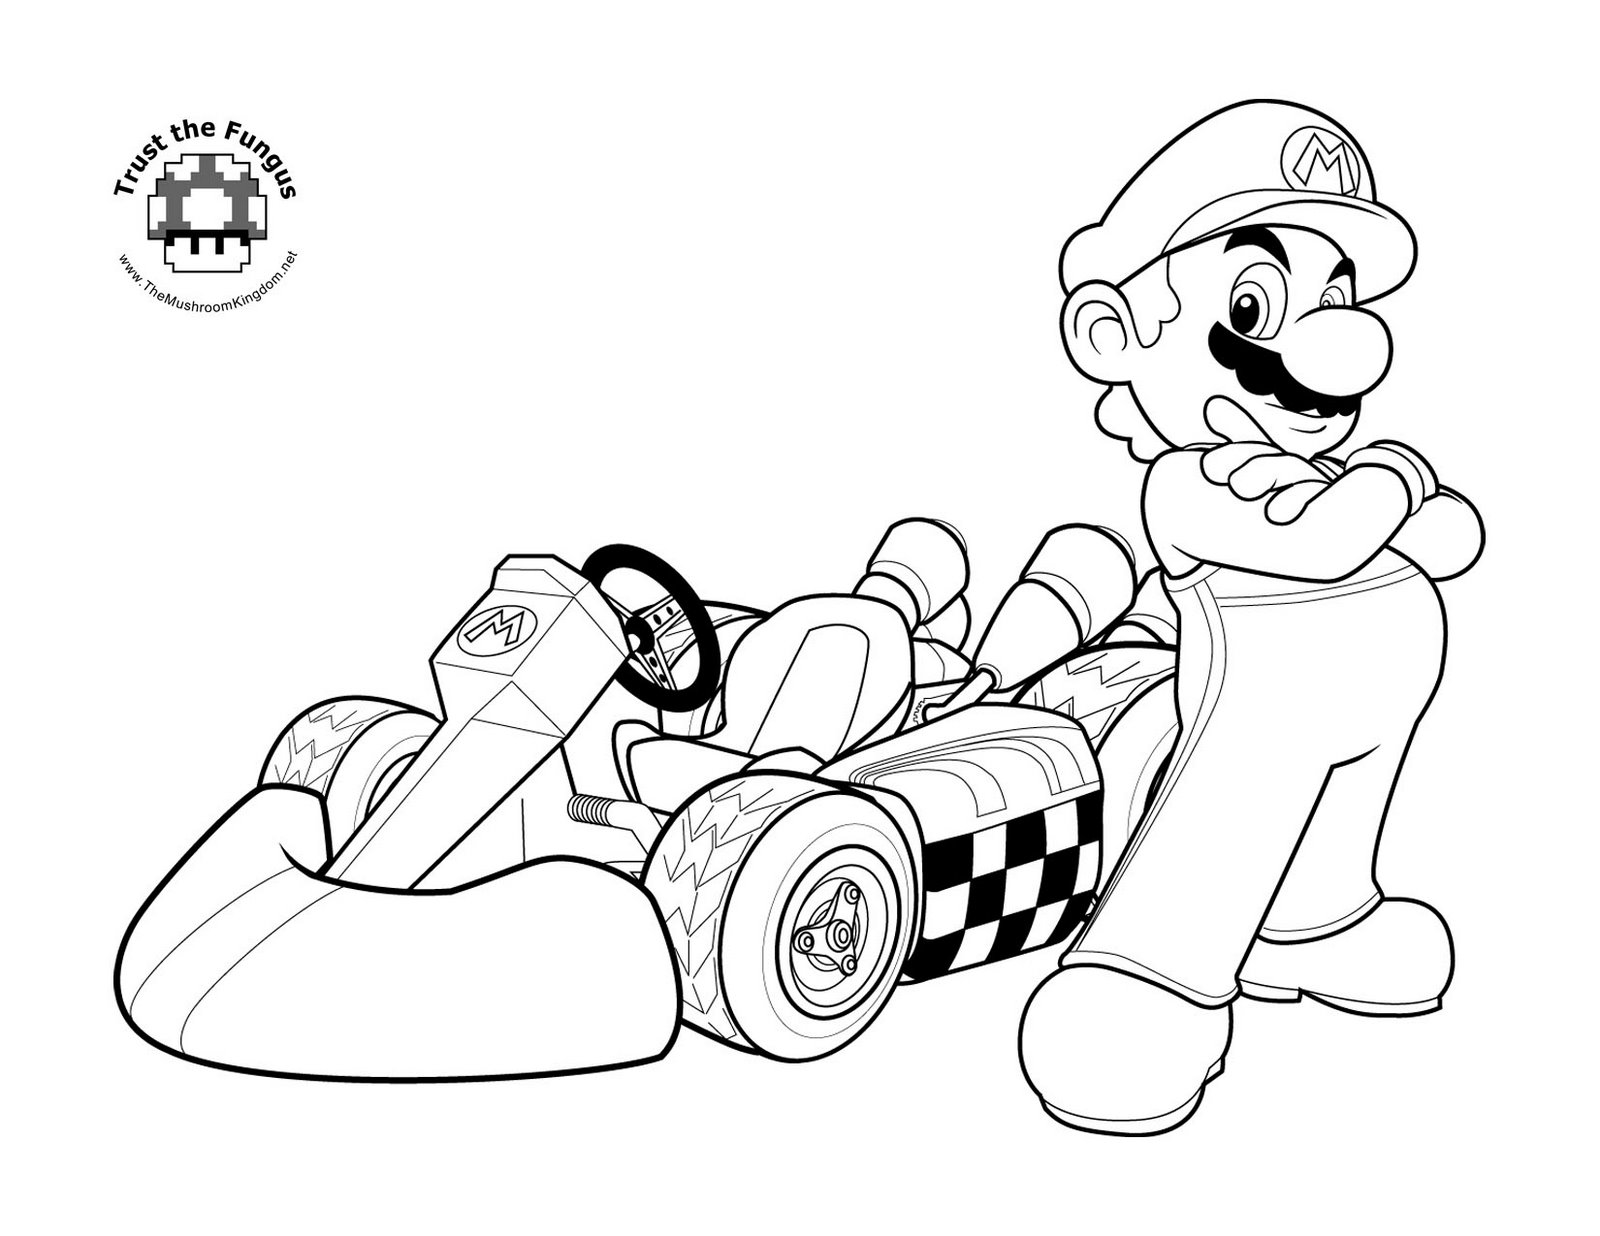 mario coloring pictures mario coloring pages black and white super mario pictures coloring mario